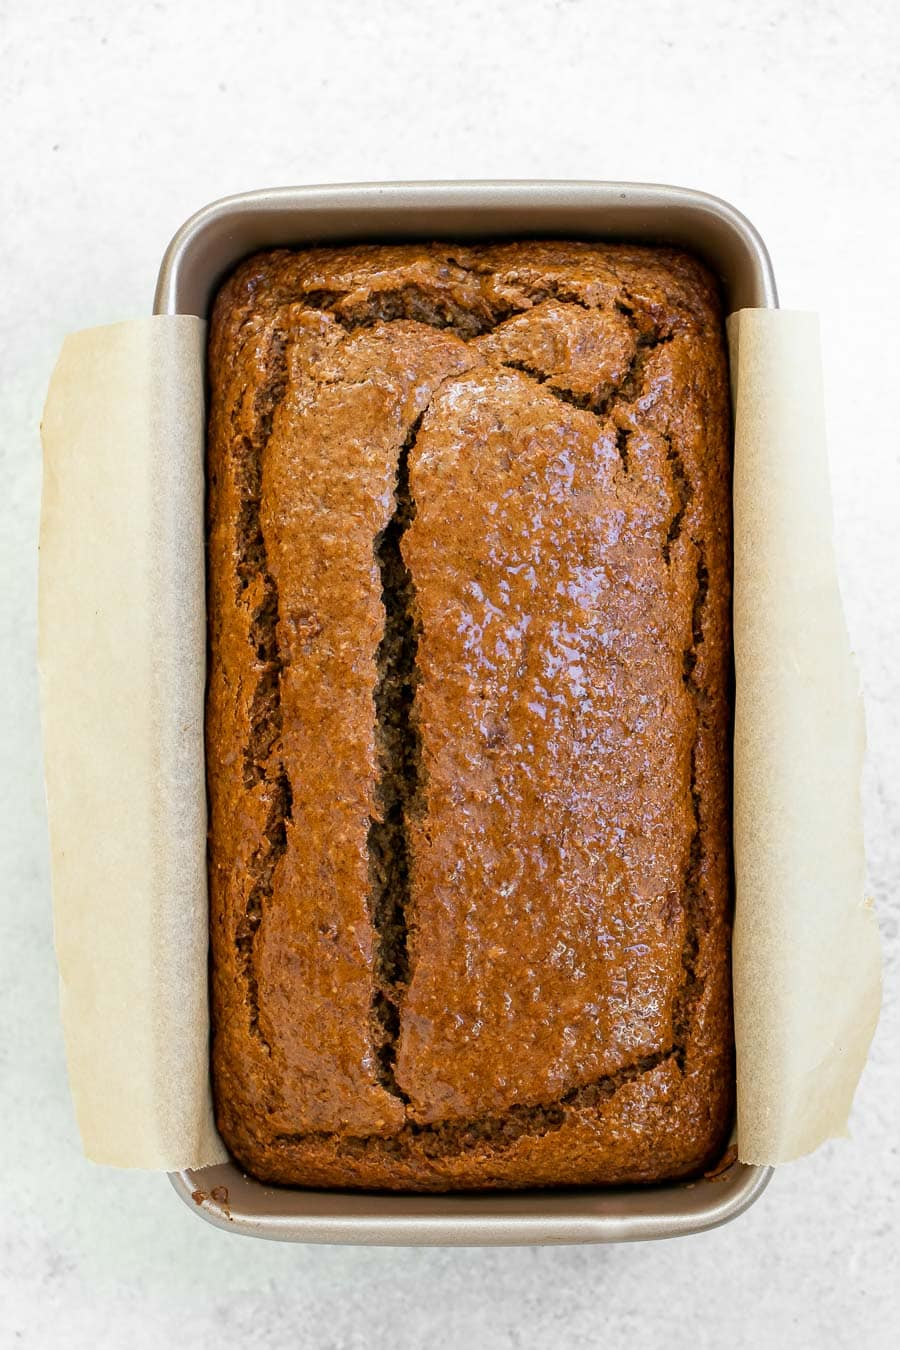 Fresh banana bread in a pan out of the oven.